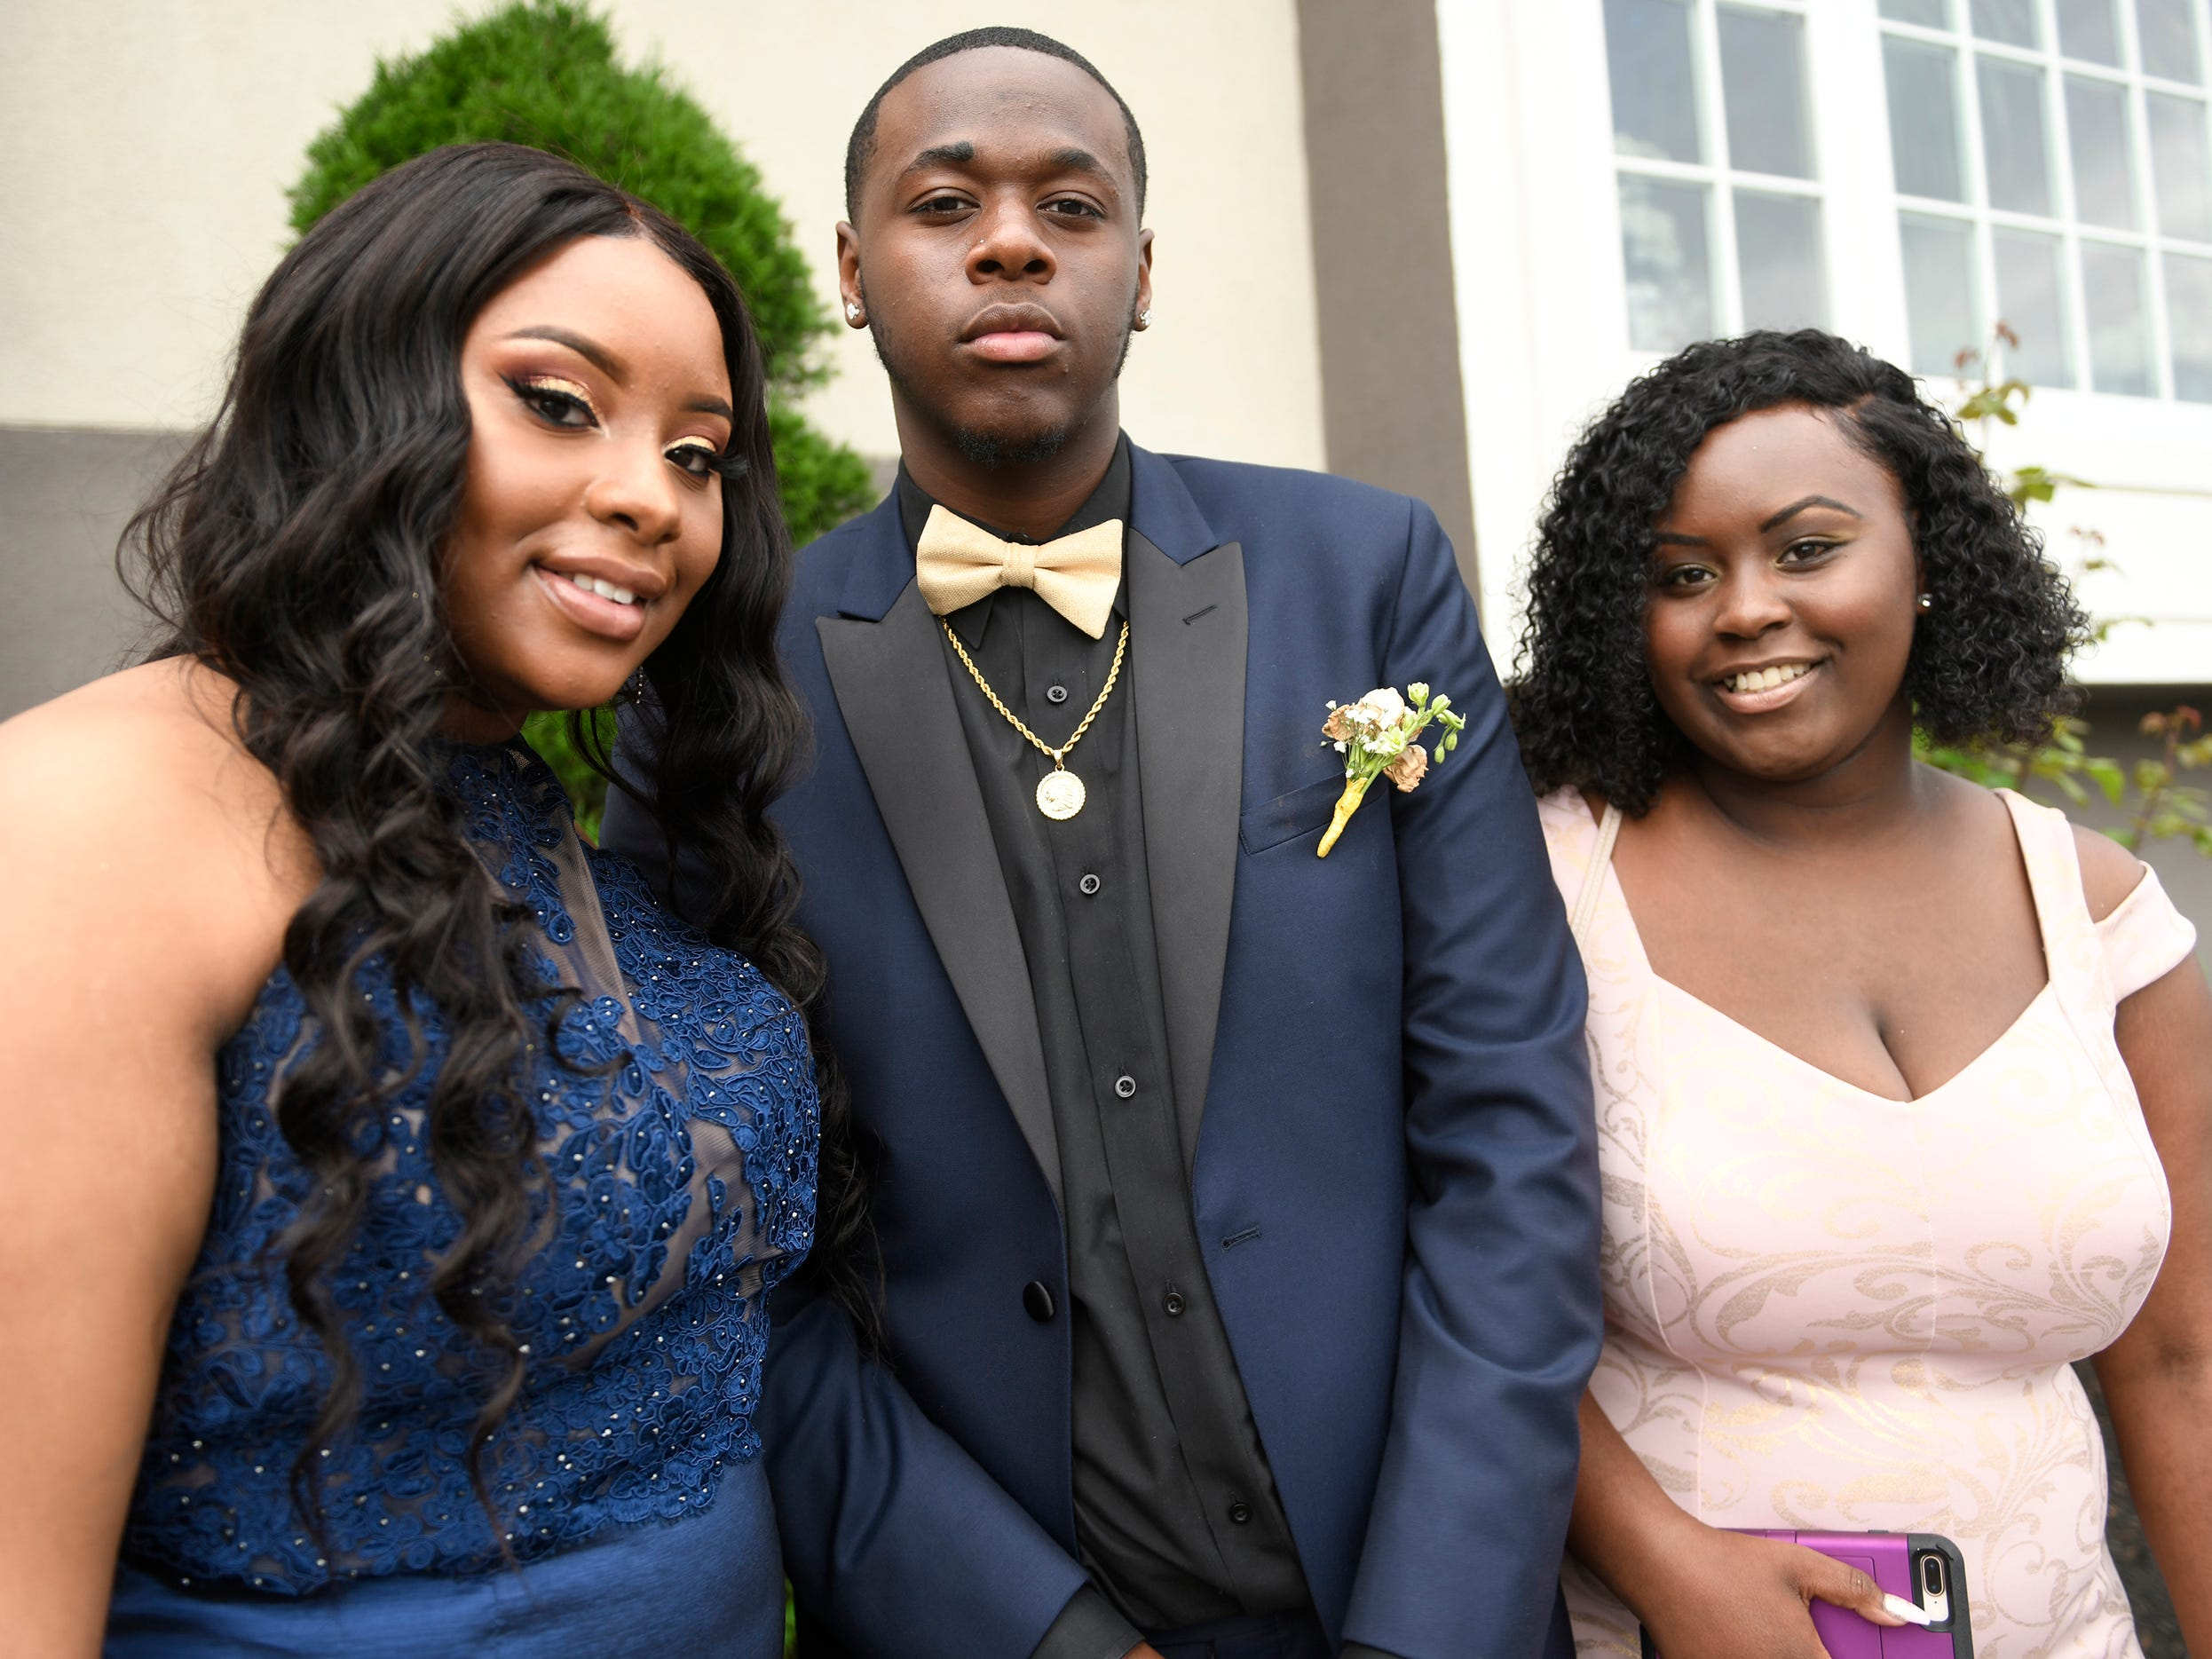 Scenes from the 2019 Millville High School prom held at Adelphia Restaurant in Deptford on Friday, May 10.